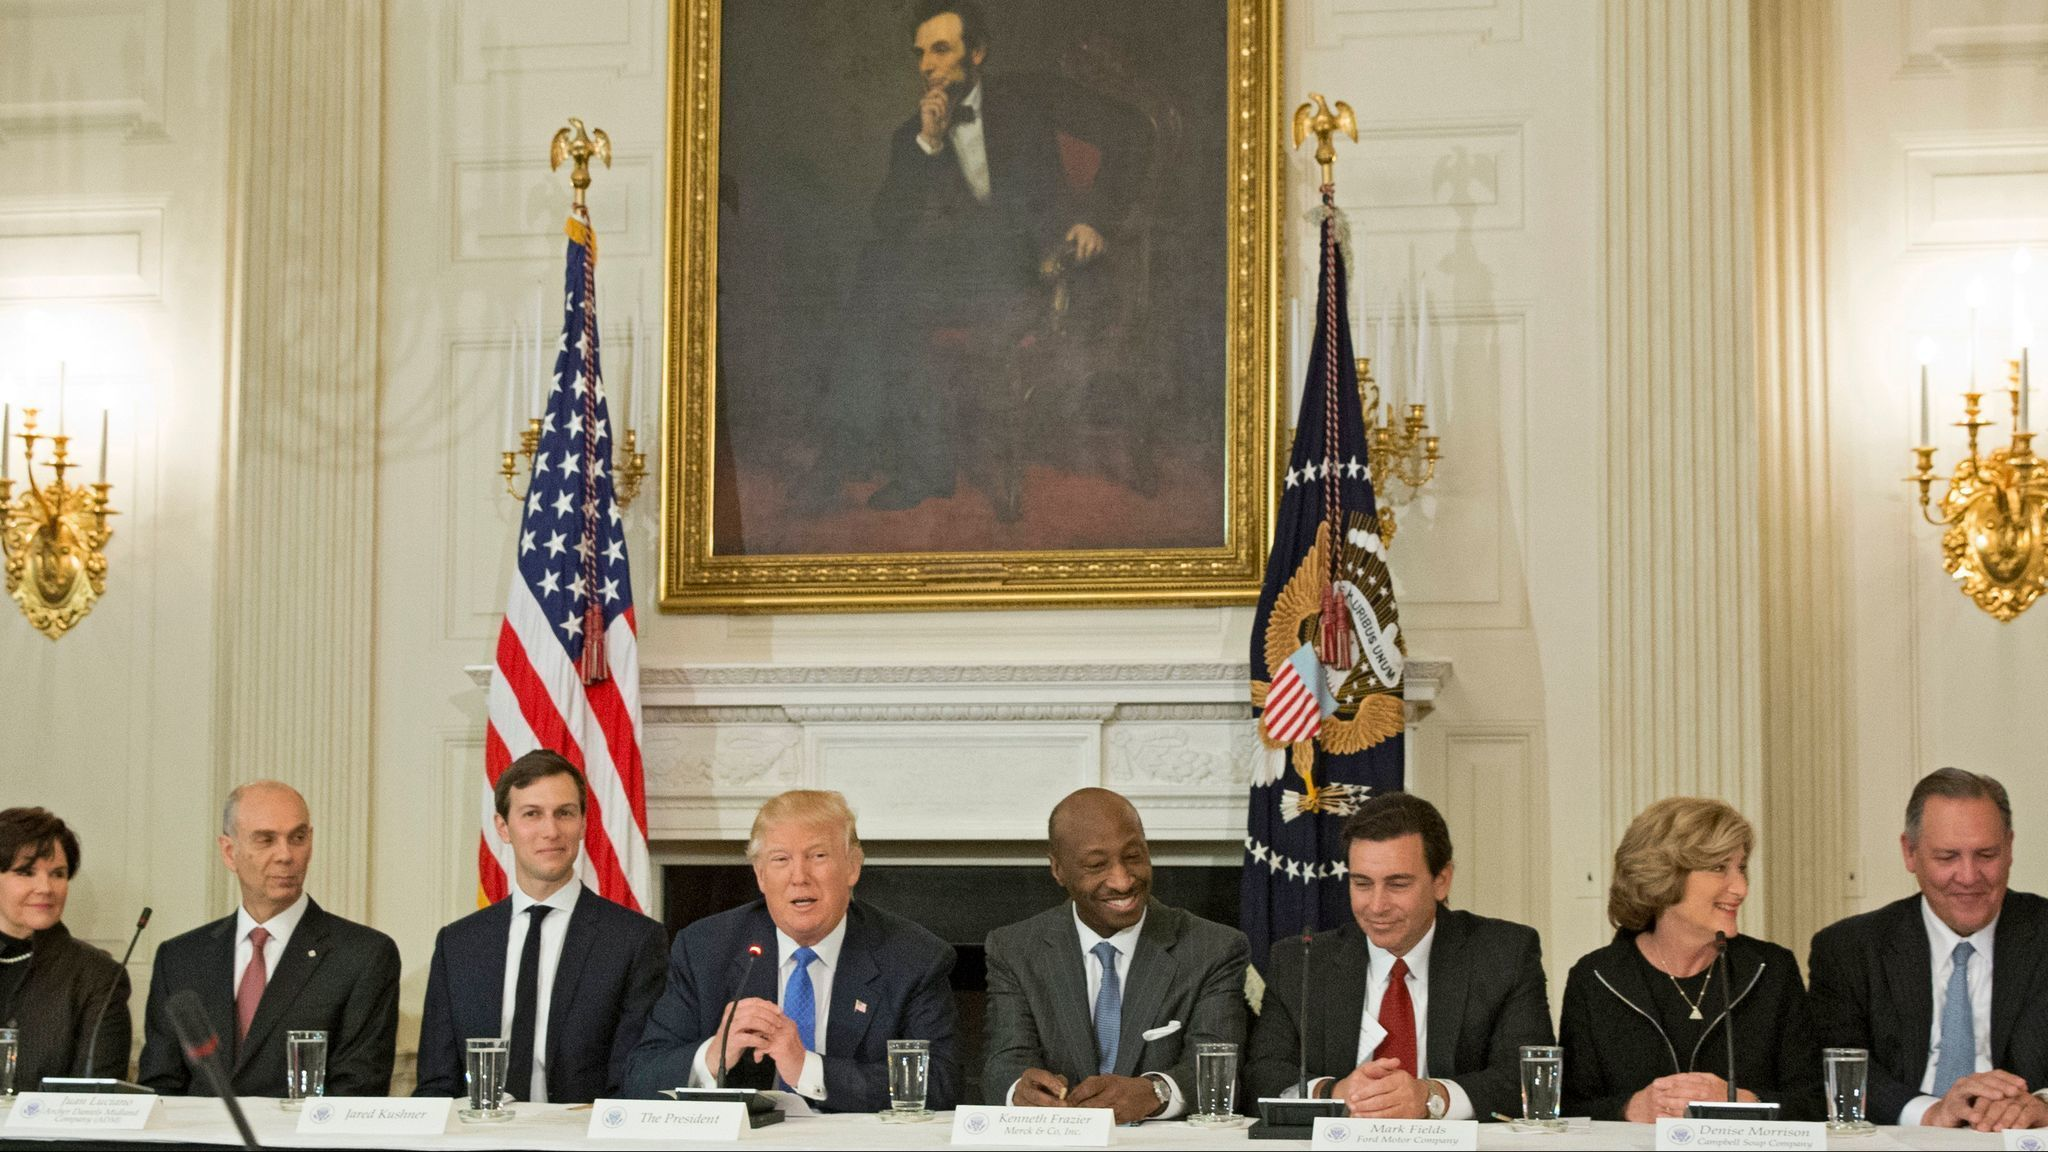 After CEO exodus, Trump ends two advisory councils